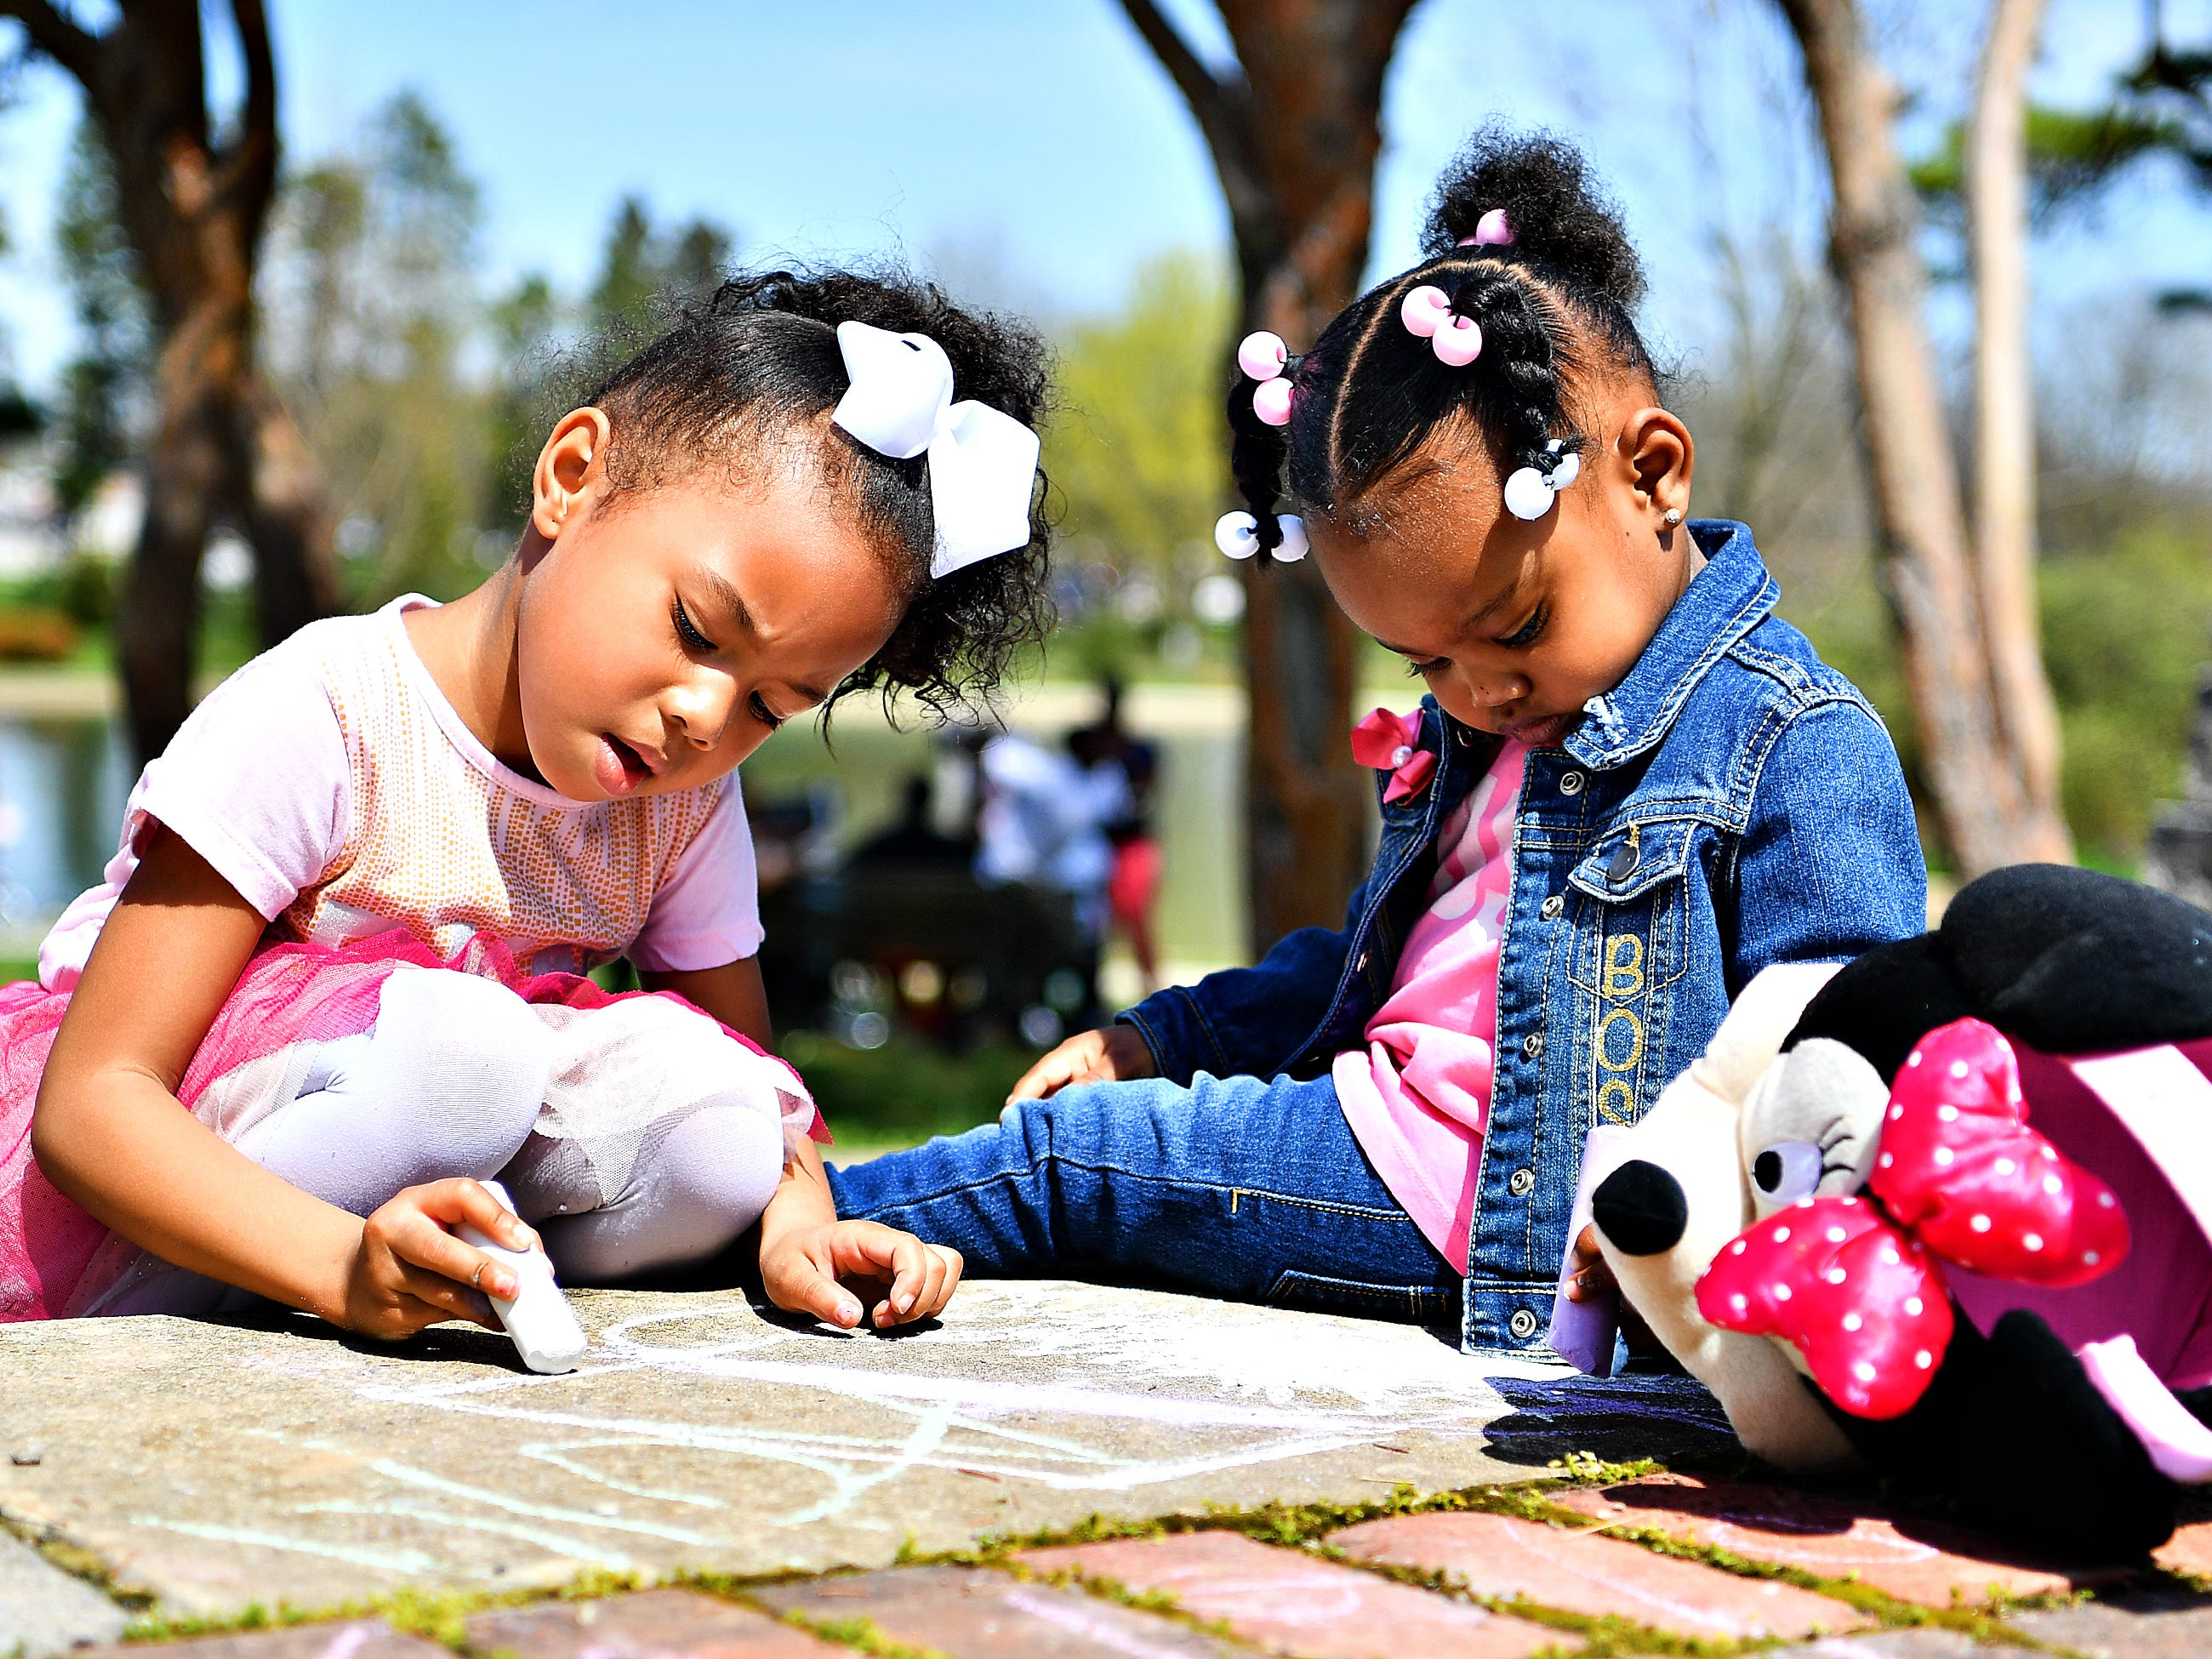 Malyia Andino, 4, and Inyce Cross, 2, both of York City, draw with sidewalk chalk during the 44th Annual York City Easter Egg Hunt at Kiwanis Lake in York City, Saturday, April 13, 2019. Dawn J. Sagert photo